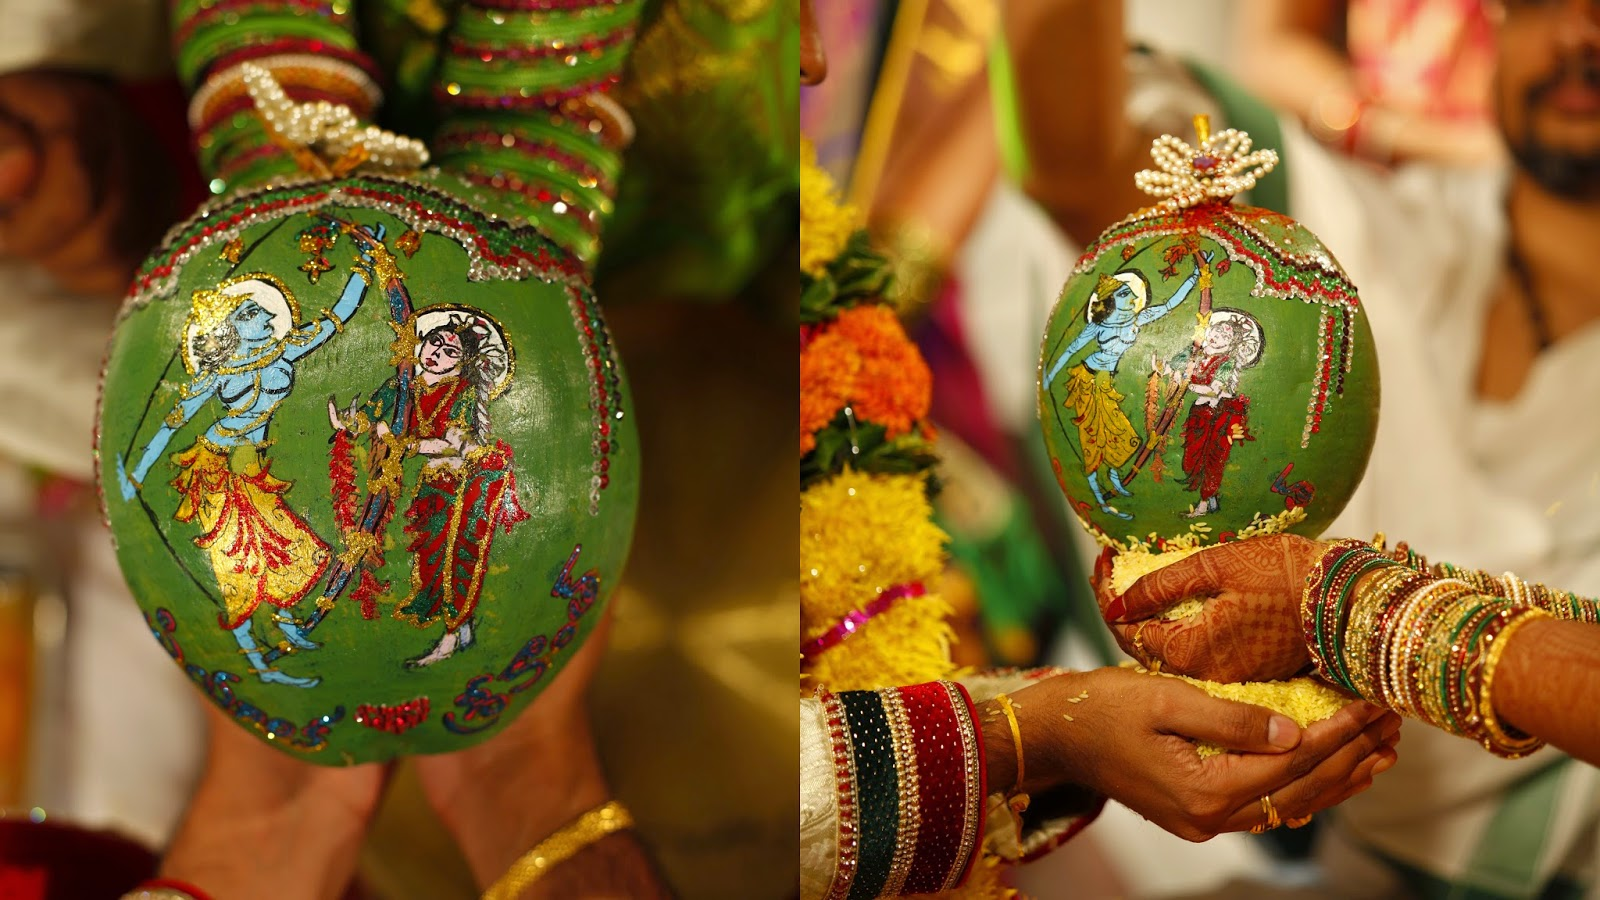 Pelli poola jada bride and bondam but new water proof stickers are the latest wedding coconuts which cost 13 the price of painting coconut is picking up trend in us and india junglespirit Gallery